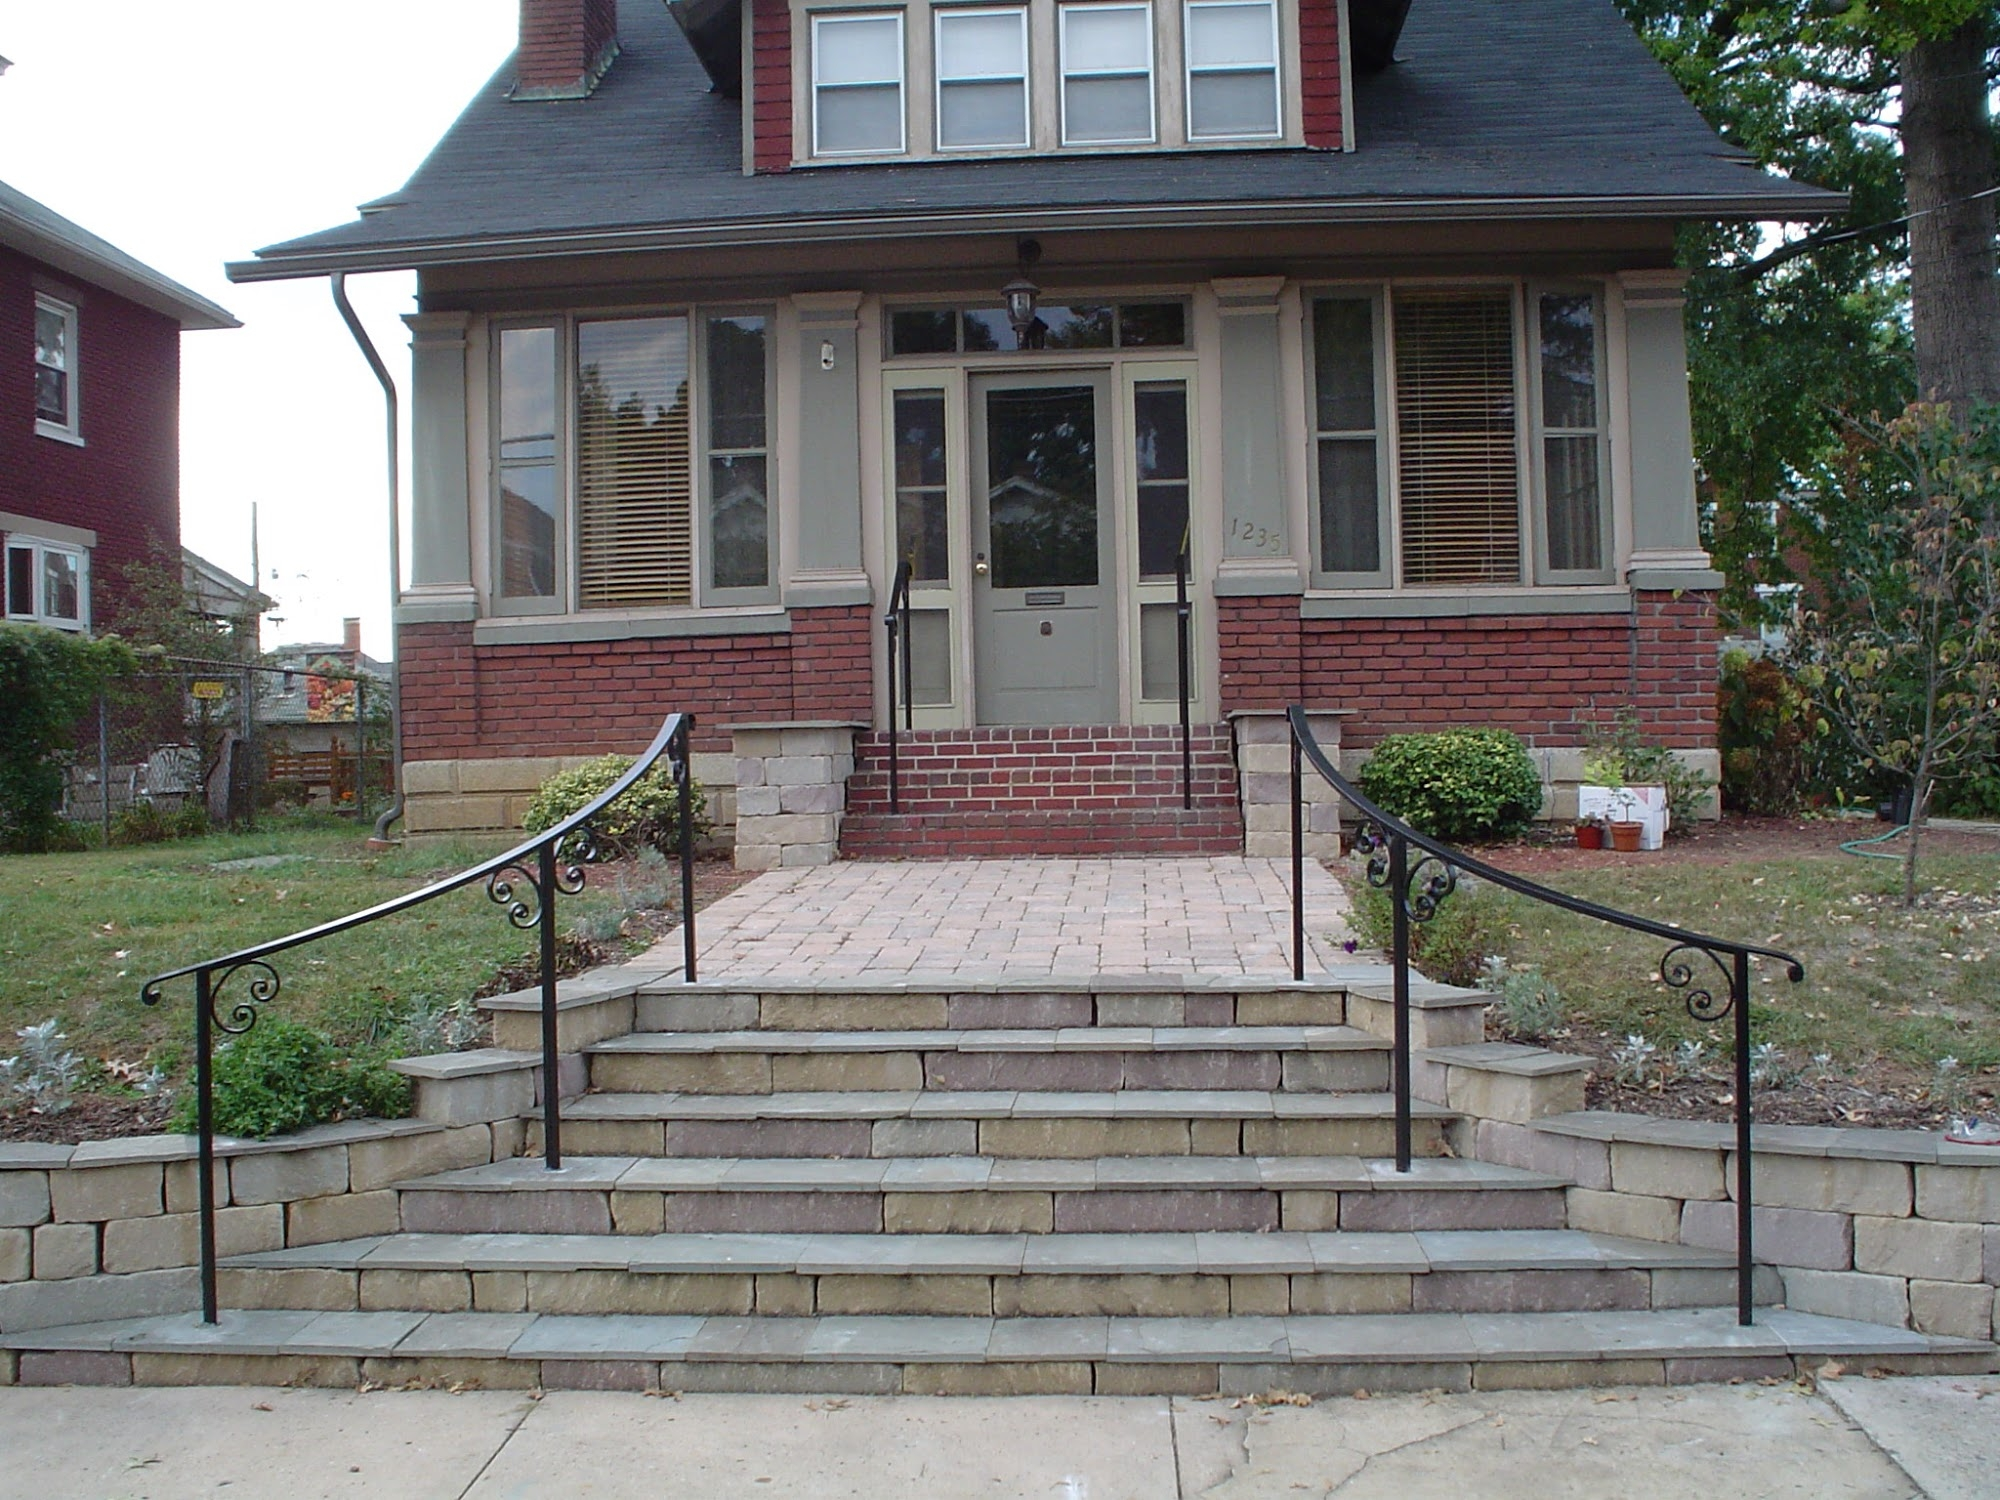 Exterior Railings Antietam Iron Works   Outside Metal Railings For Steps   Galvanized Iron   Wrought Iron Staircase Used   Decorative Iron Stair Rail Support   Steel Railing   Mixed